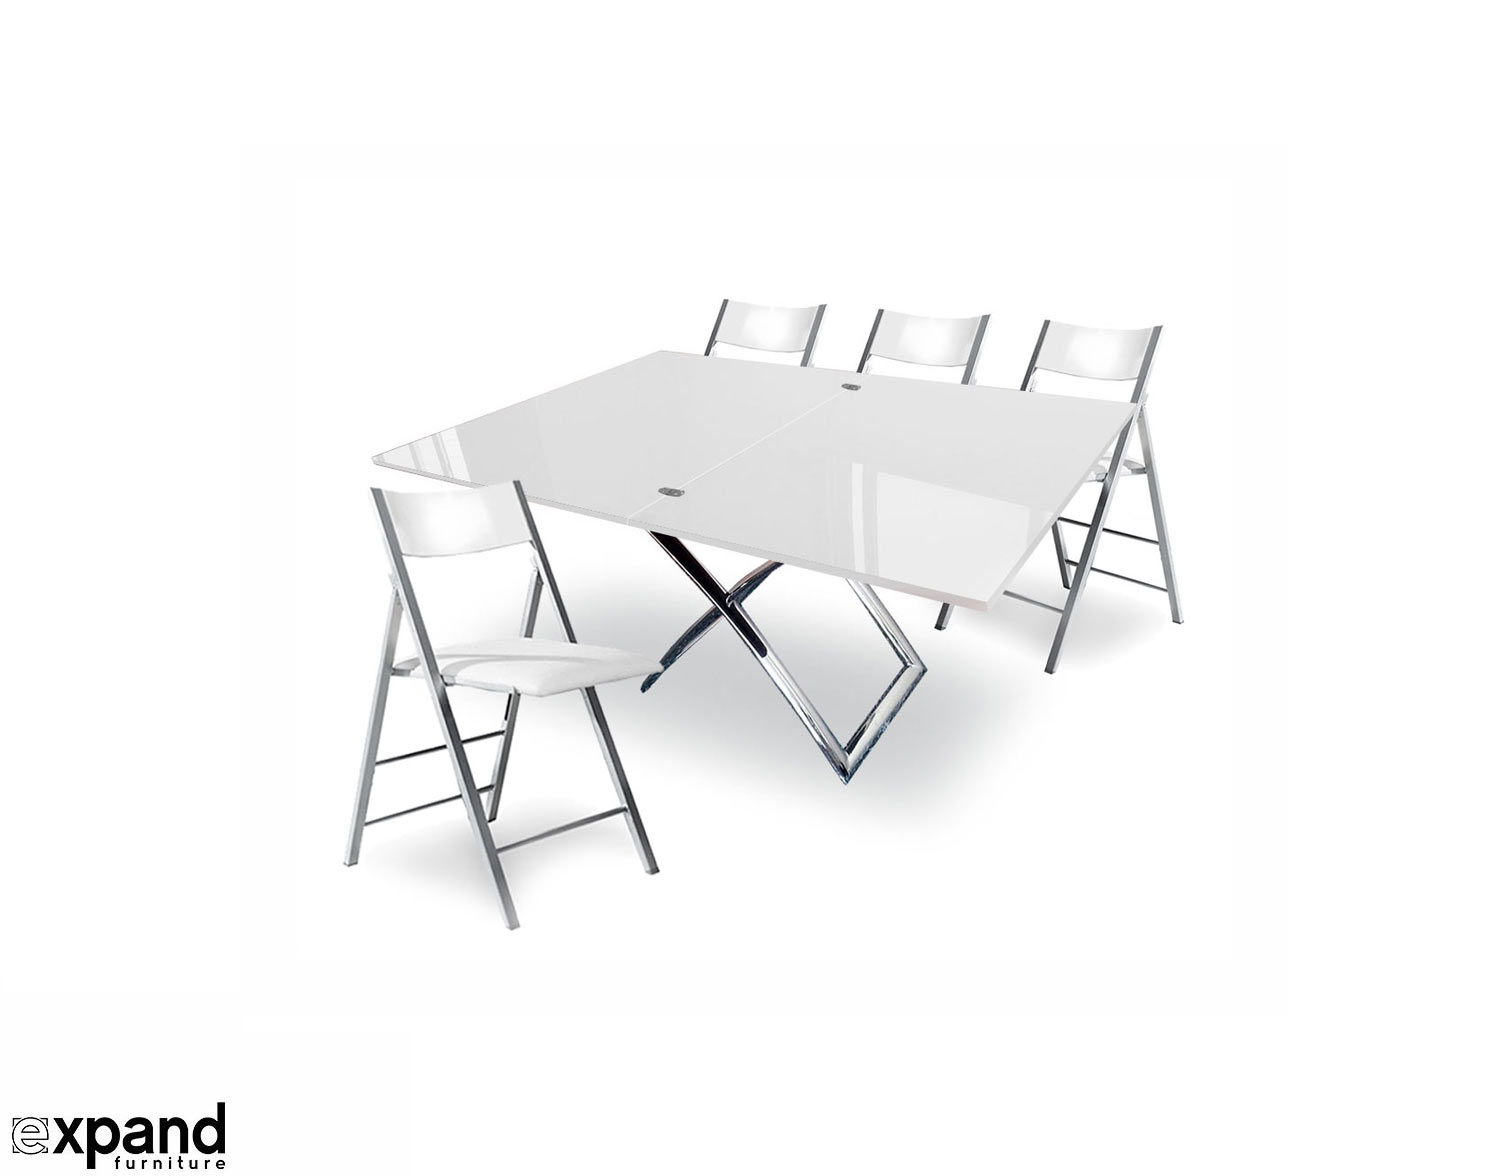 Images of white folding table and chairs prev mlvzkfh